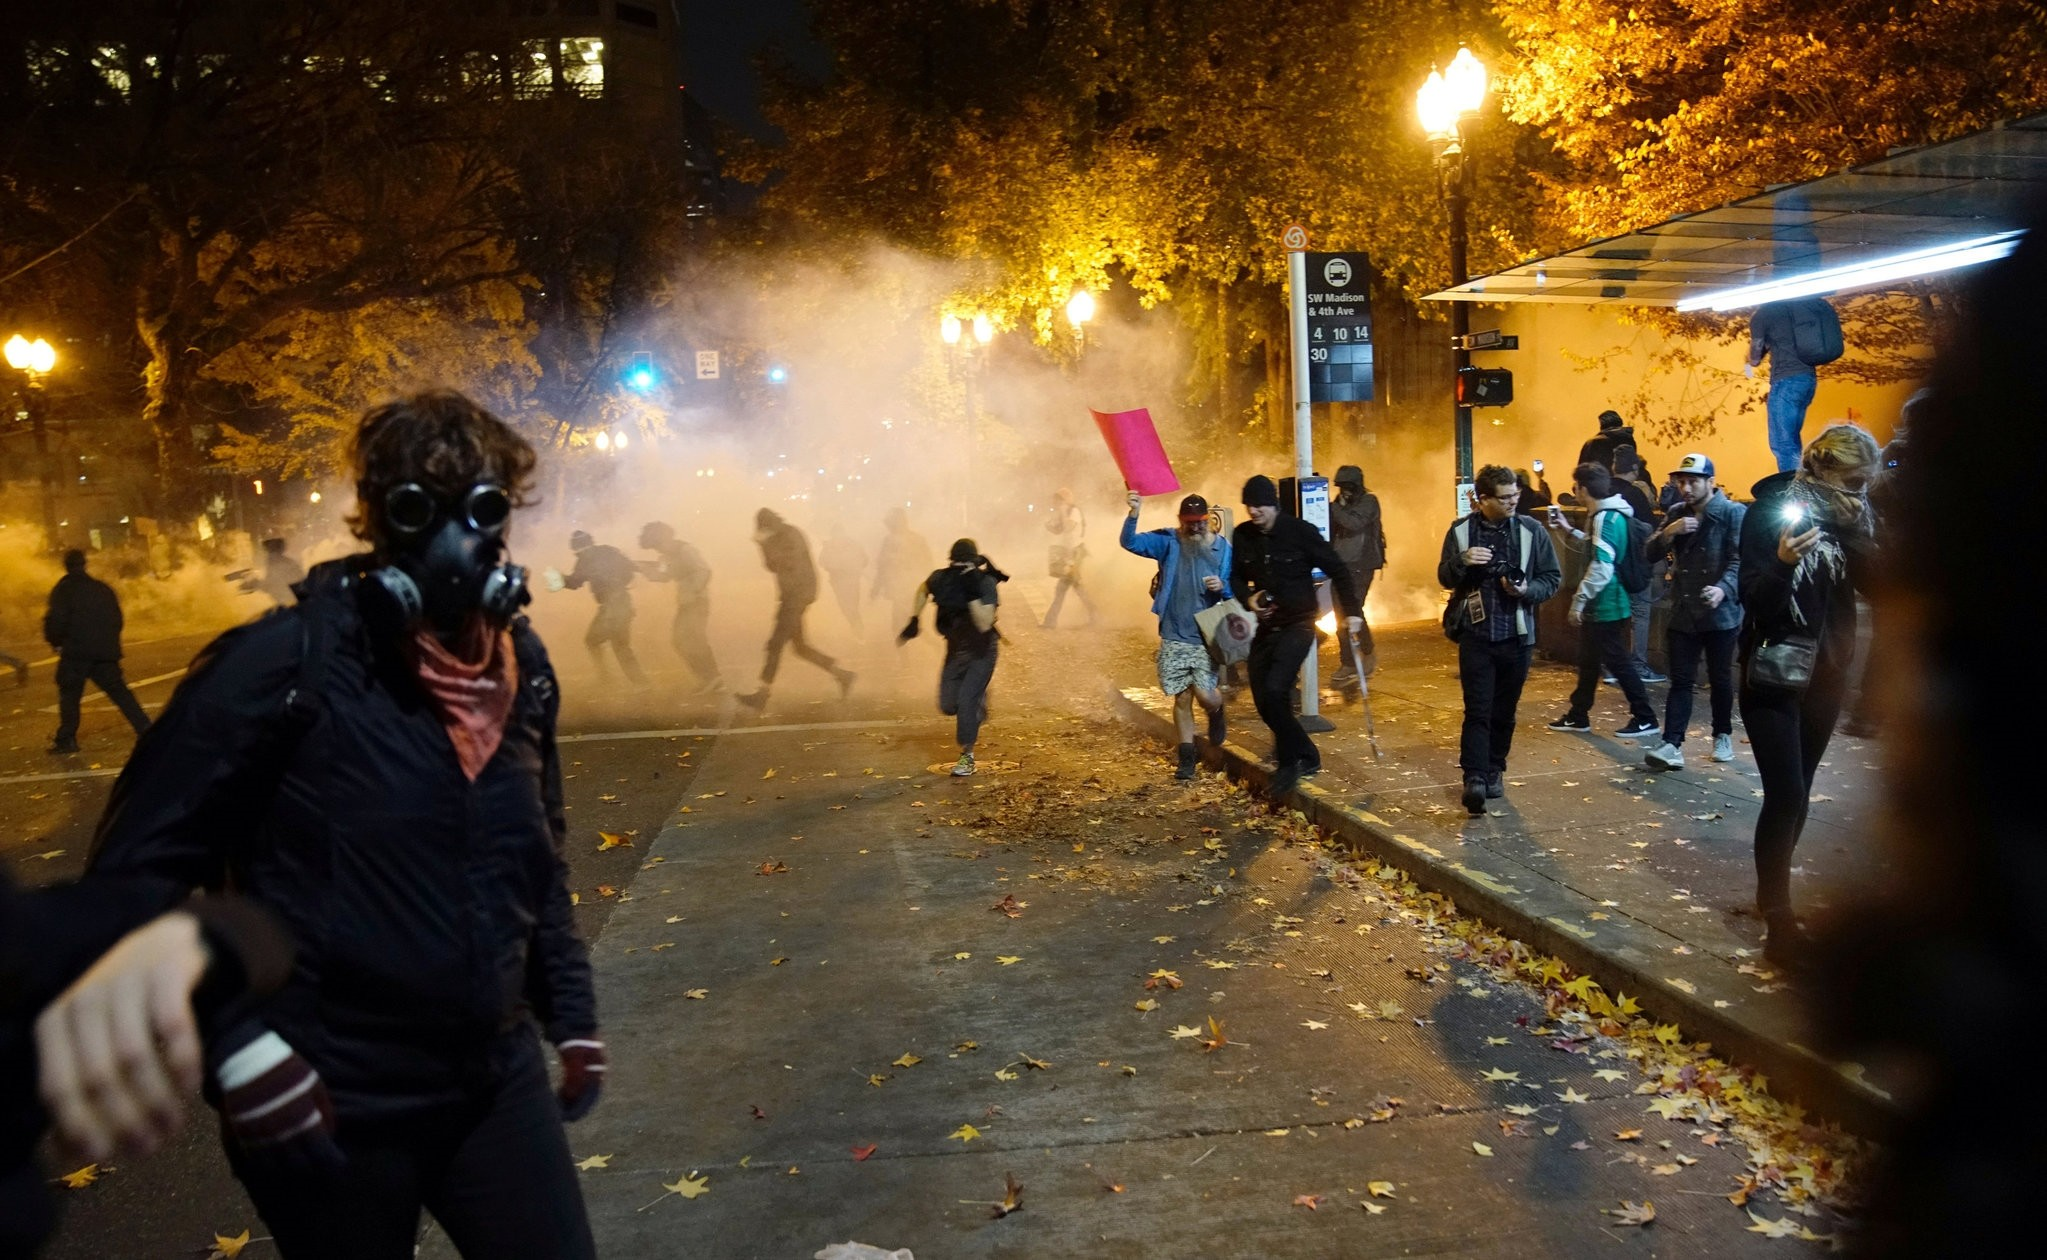 People try to move away from a gas cloud during a protest against Trump as President of the U.S. in Portland, Oregon, U.S. November 12, 2016. (REUTERS Photo)